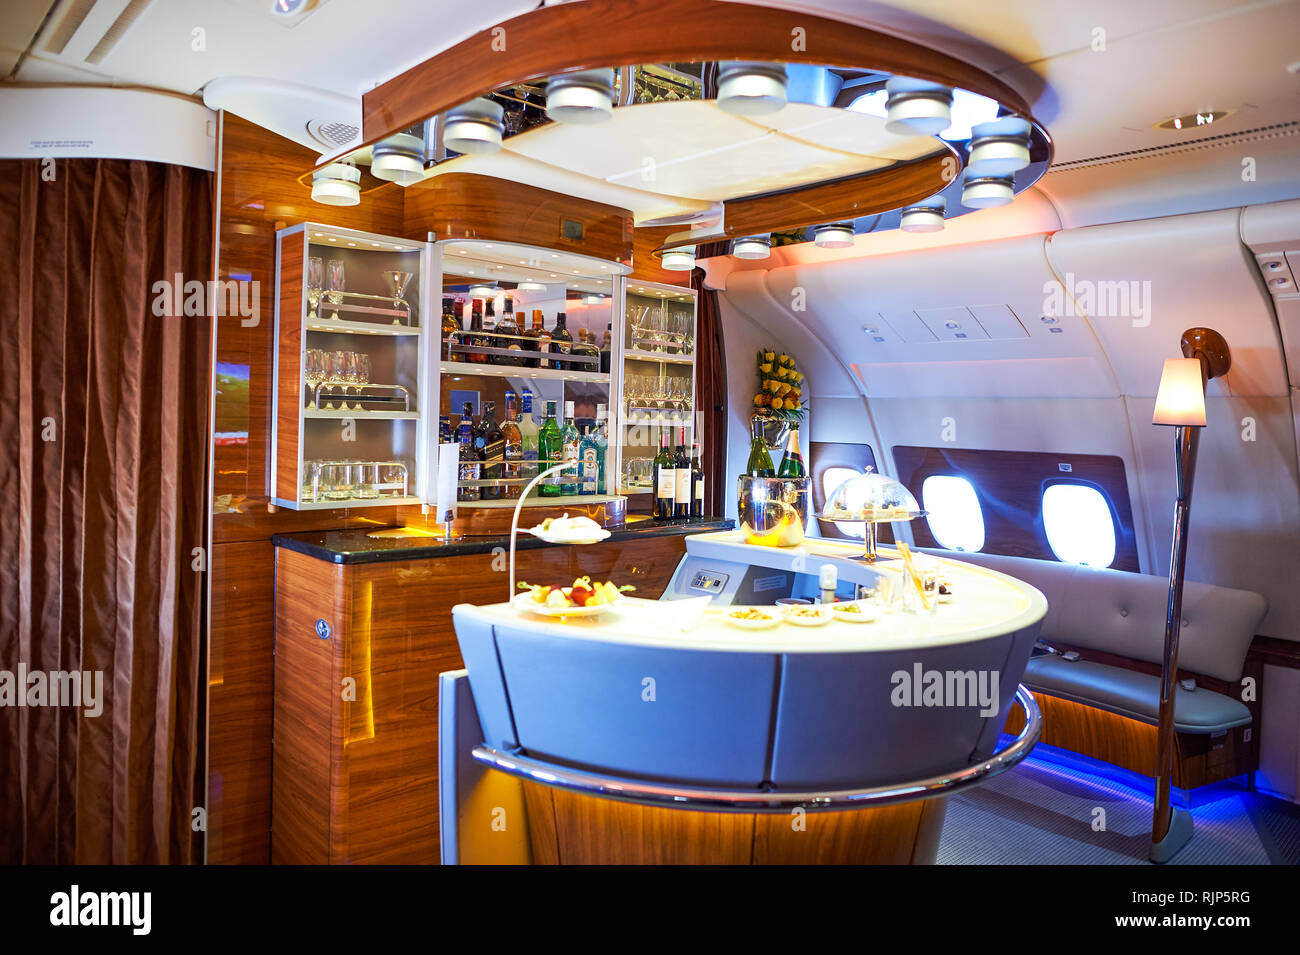 DUBAI, UAE - MARCH 31, 2015: interior of Emirates Airbus A380. Emirates is one of two flag carriers of the United Arab Emirates along with Etihad Airw - Stock Image